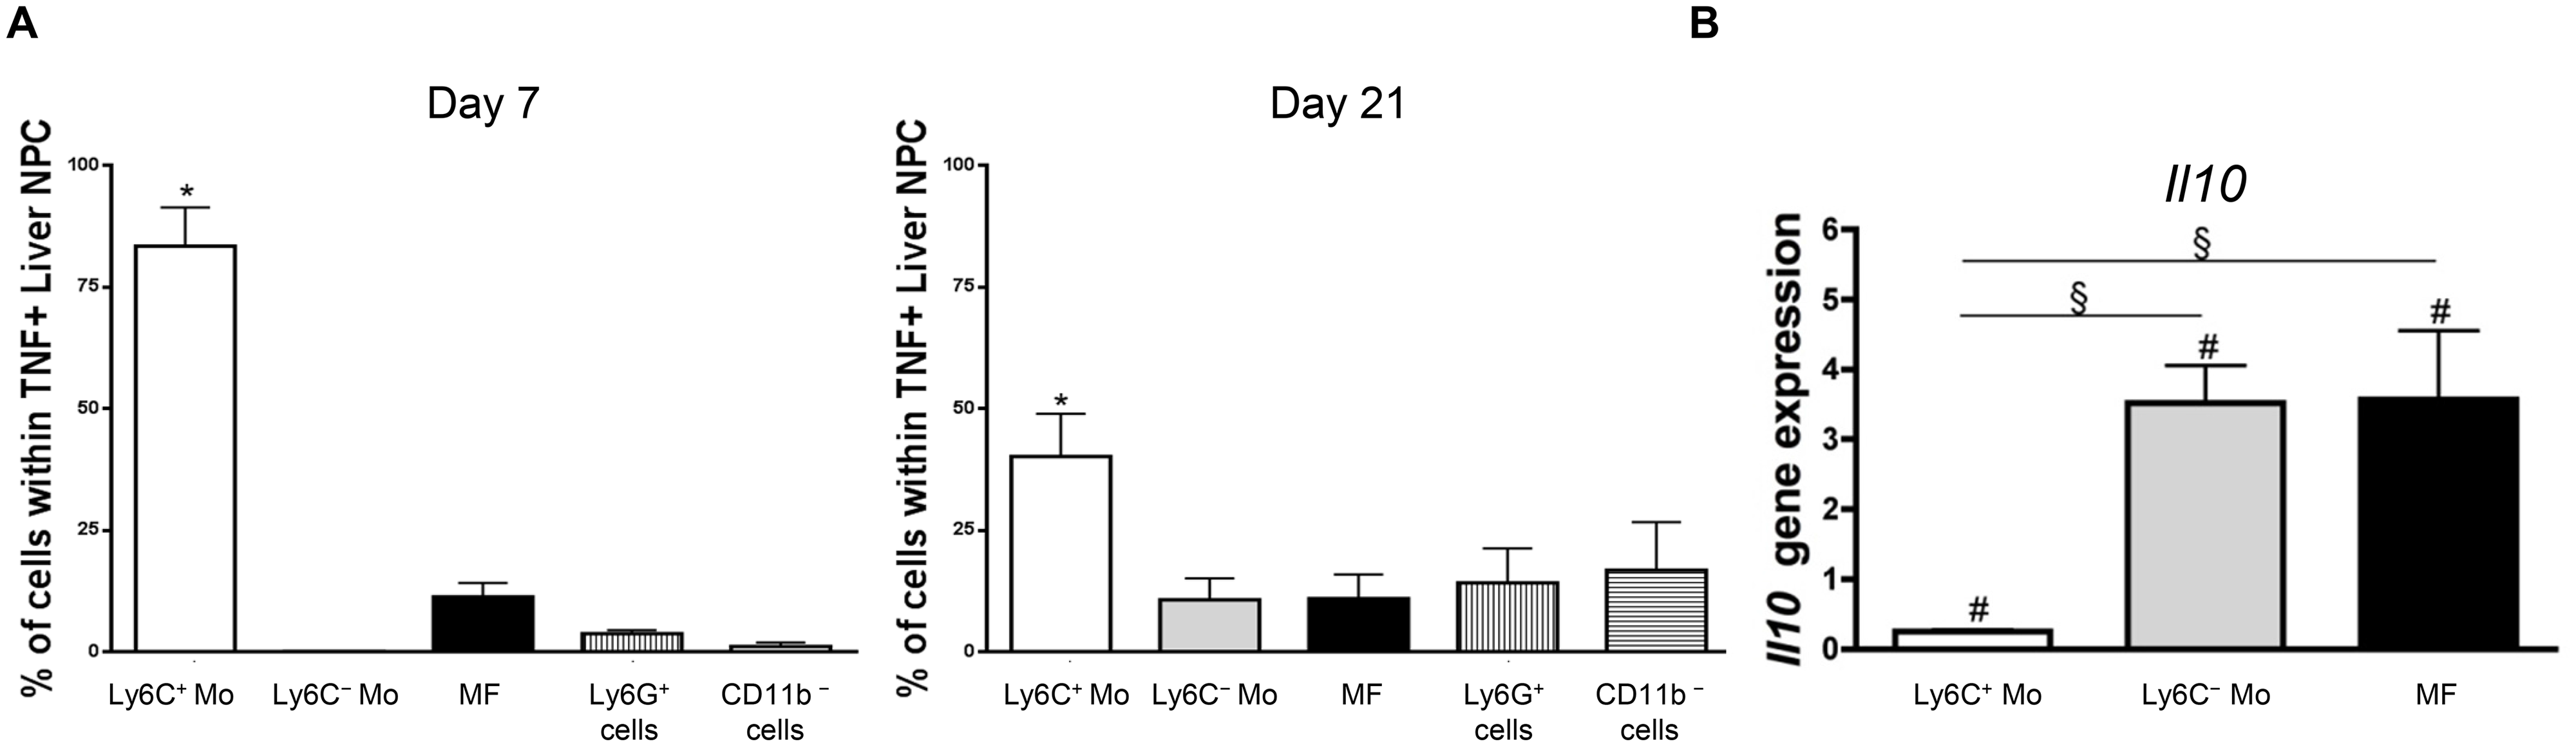 Ly6C<sup>+</sup> monocytes are the main producers of TNF while Ly6C<sup>-</sup> monocytes and macrophages are the major source of IL-10 in <i>T</i>. <i>congolense</i>-infected mice.